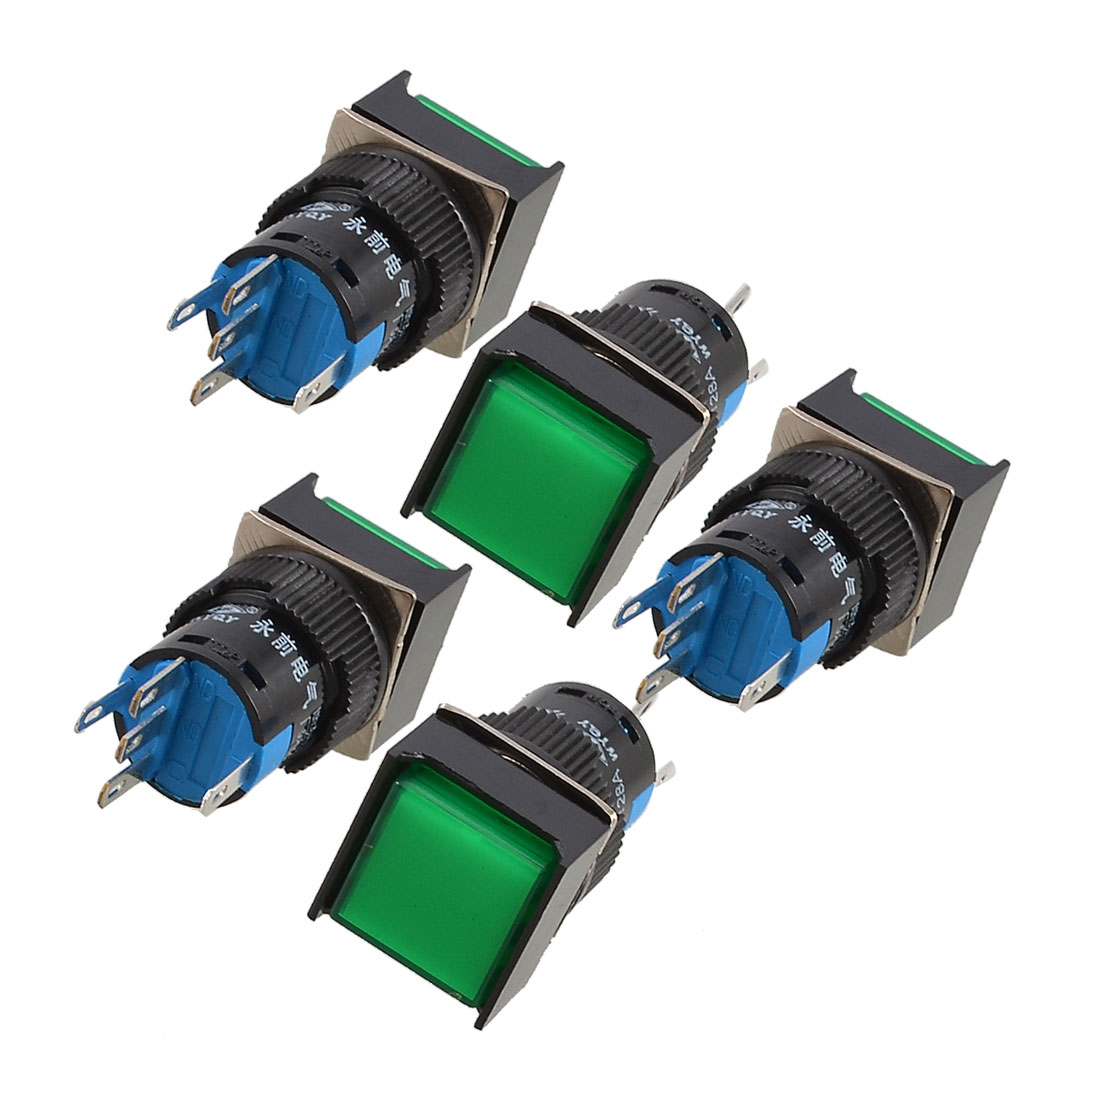 5 Pcs Green Square Cap DC 12V Light 1P2T 5 Pins Push Button Switch UL Certificated